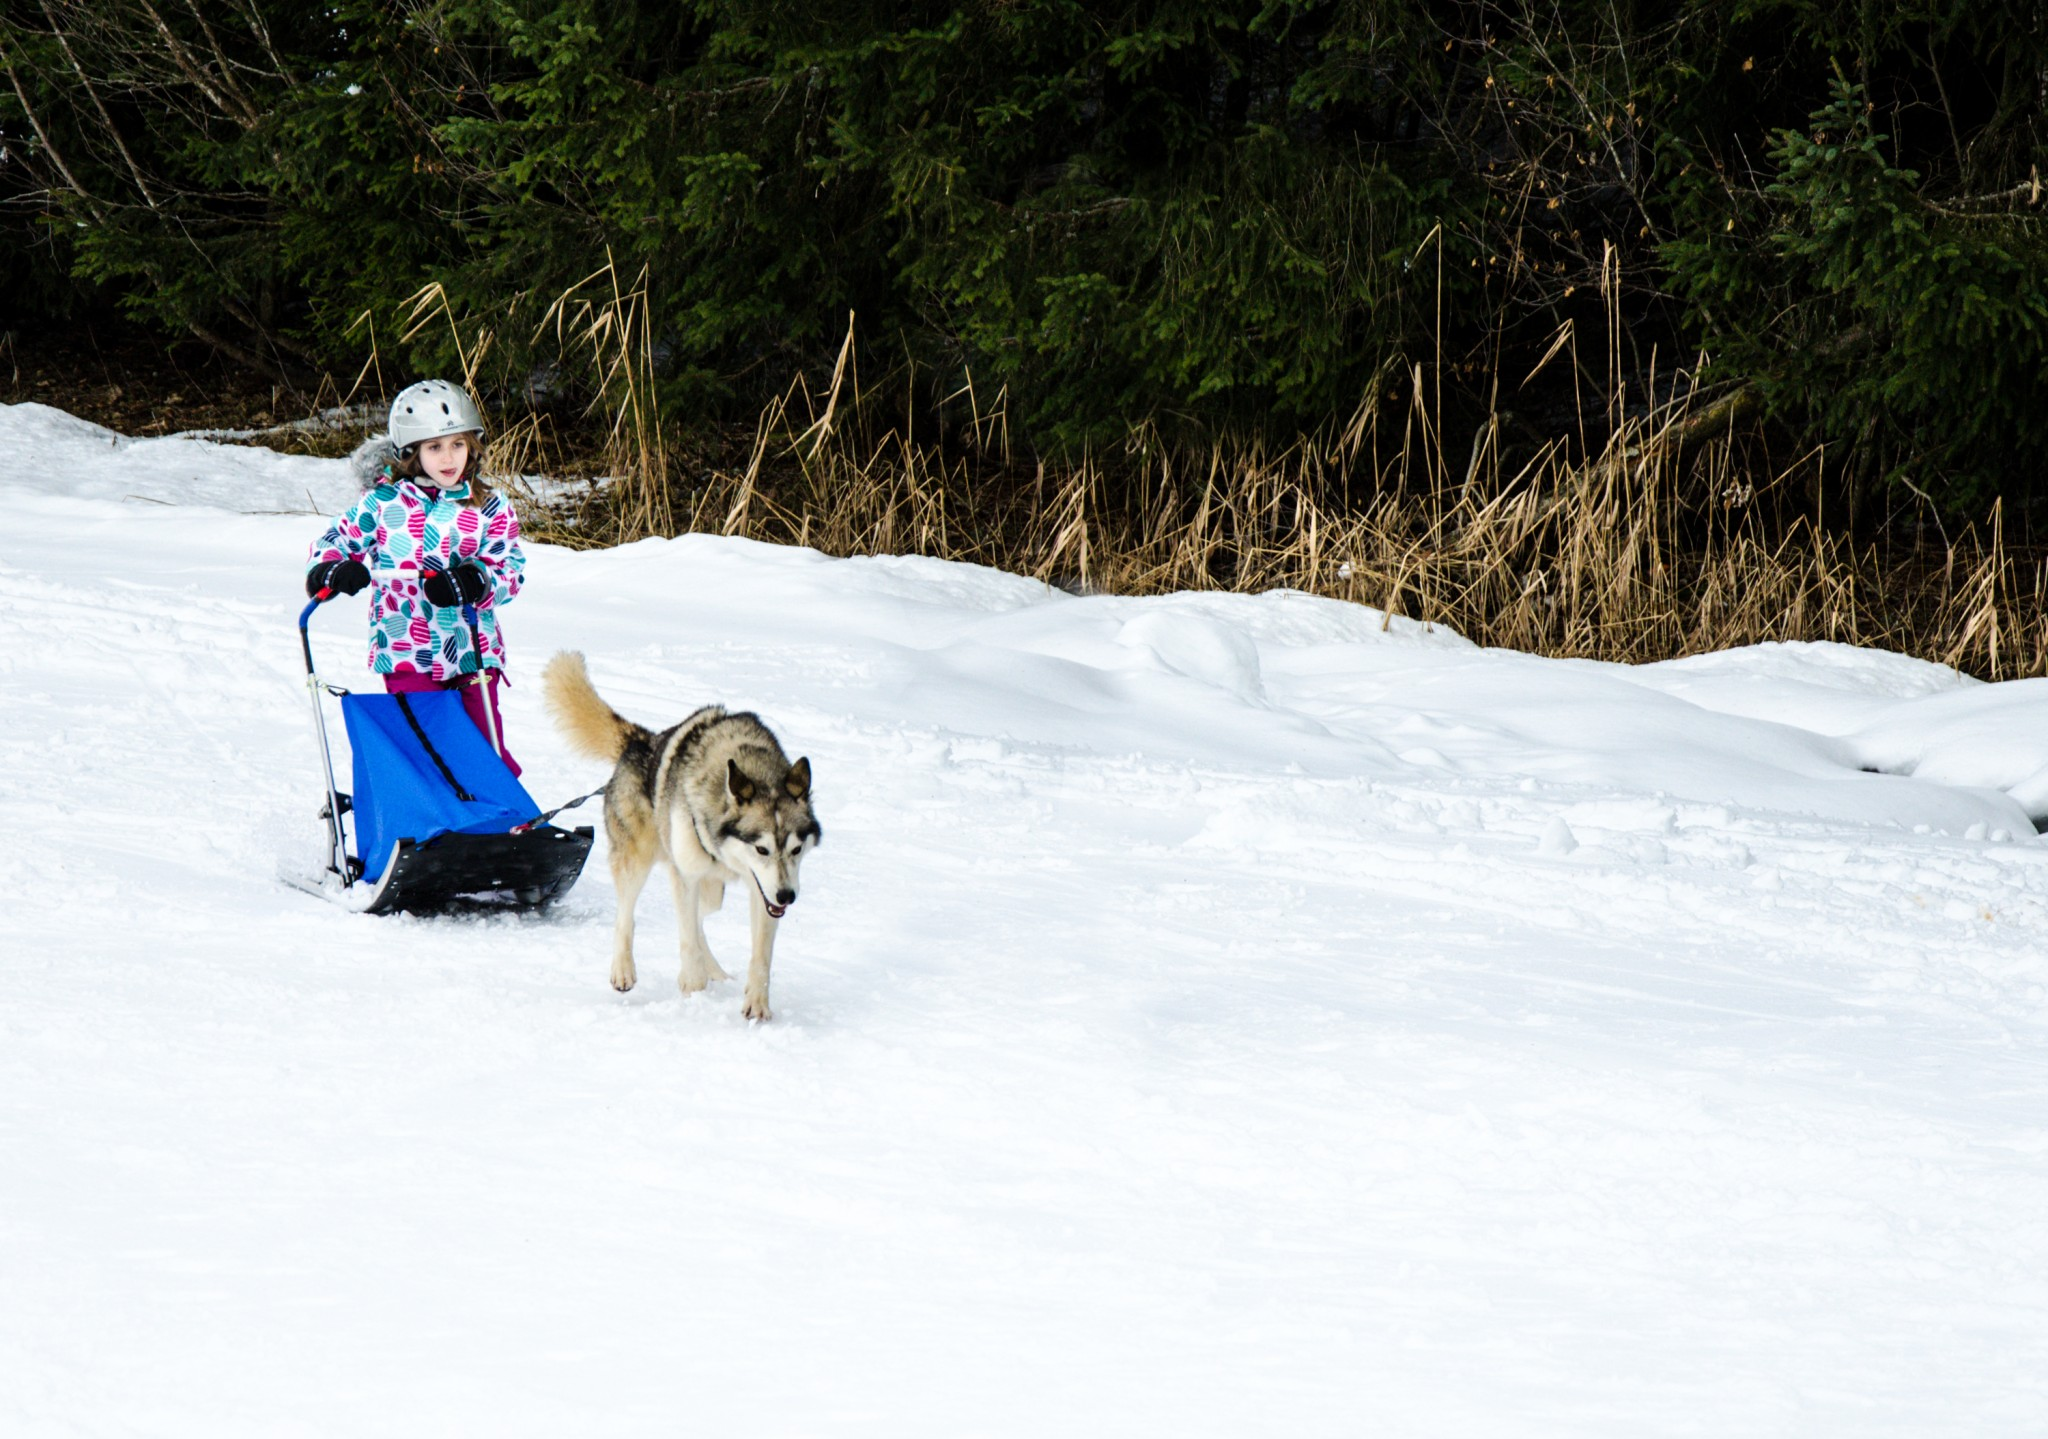 Dog Sledding for 3 Year Olds © Office de Tourisme du Val d'Arly Mont-Blanc (2)